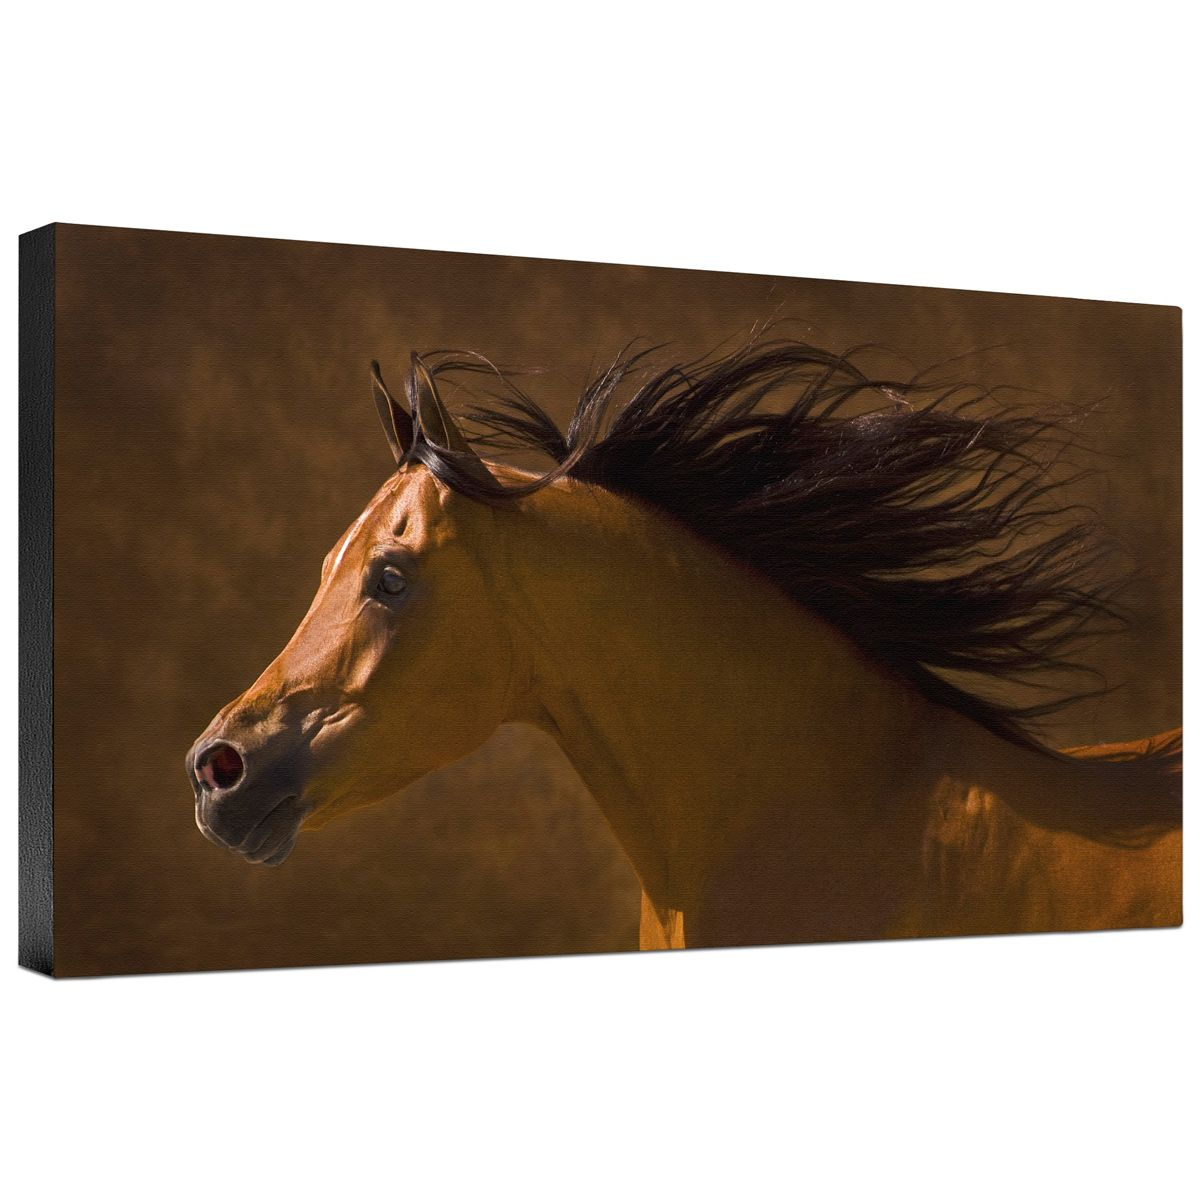 Arabian Runner Gallery Wrapped Canvas